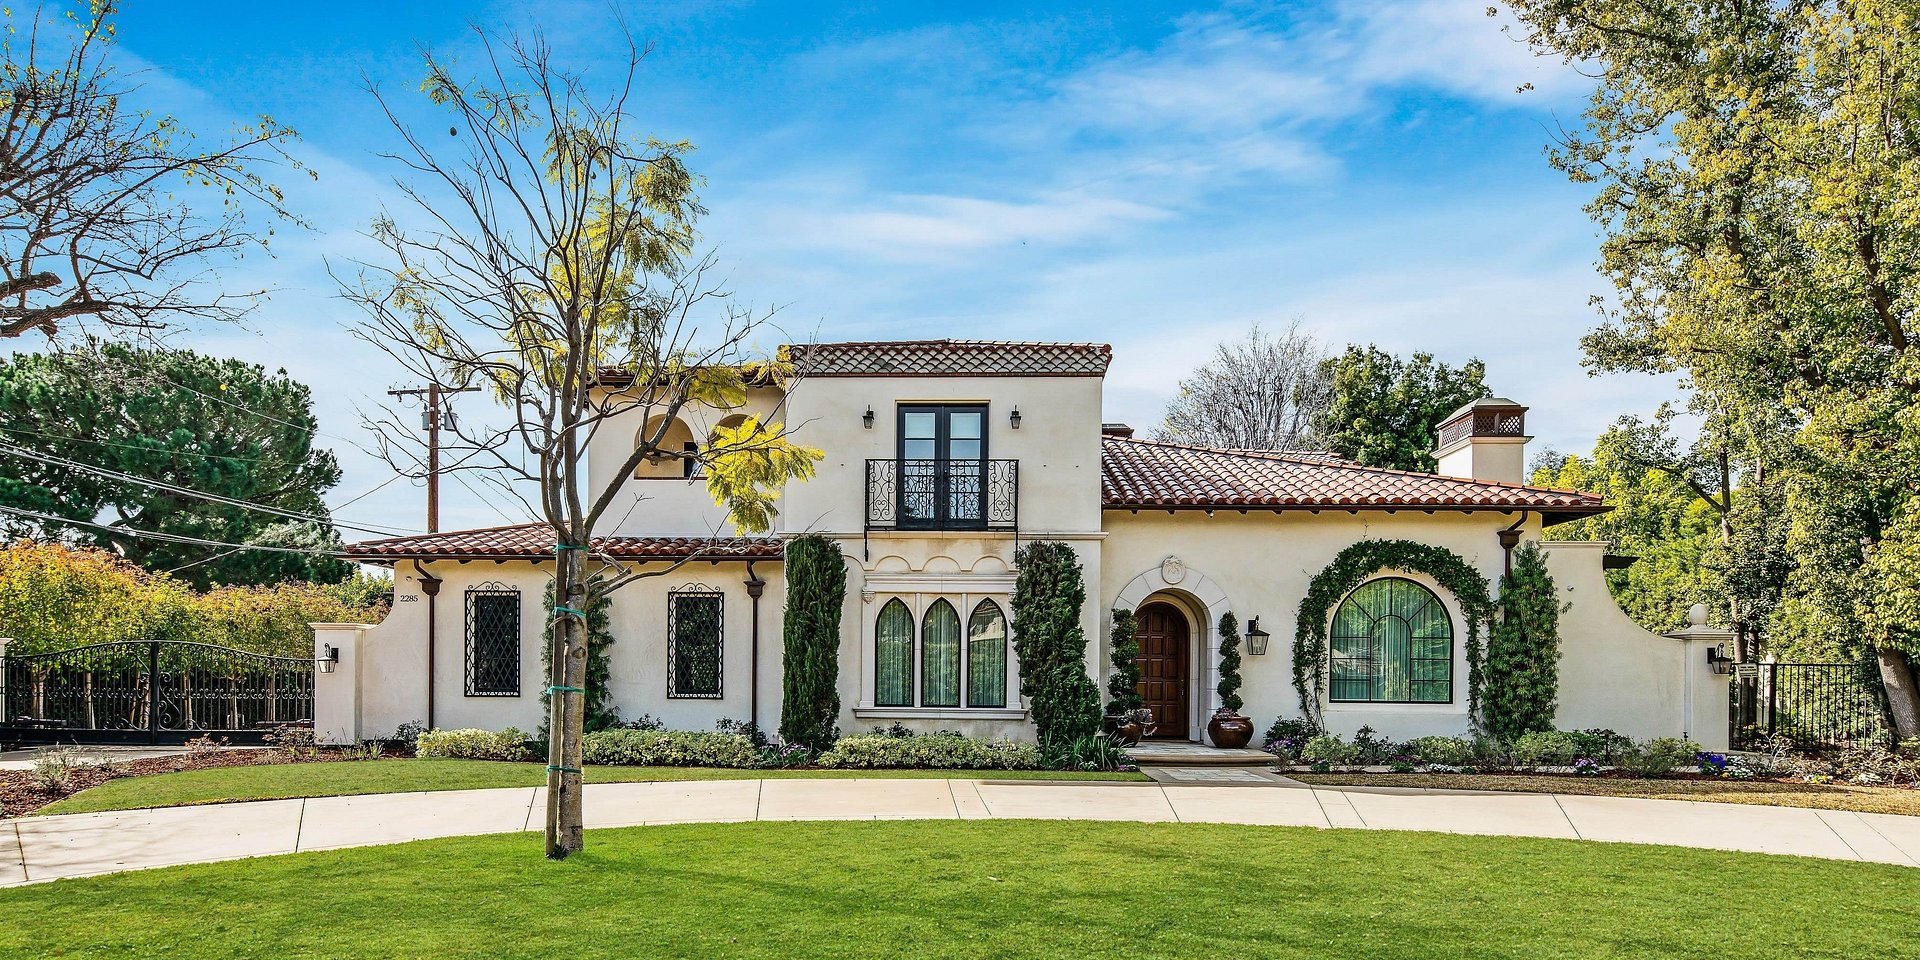 Coldwell Banker Realty Lists a San Marino Property for $7.68 Million